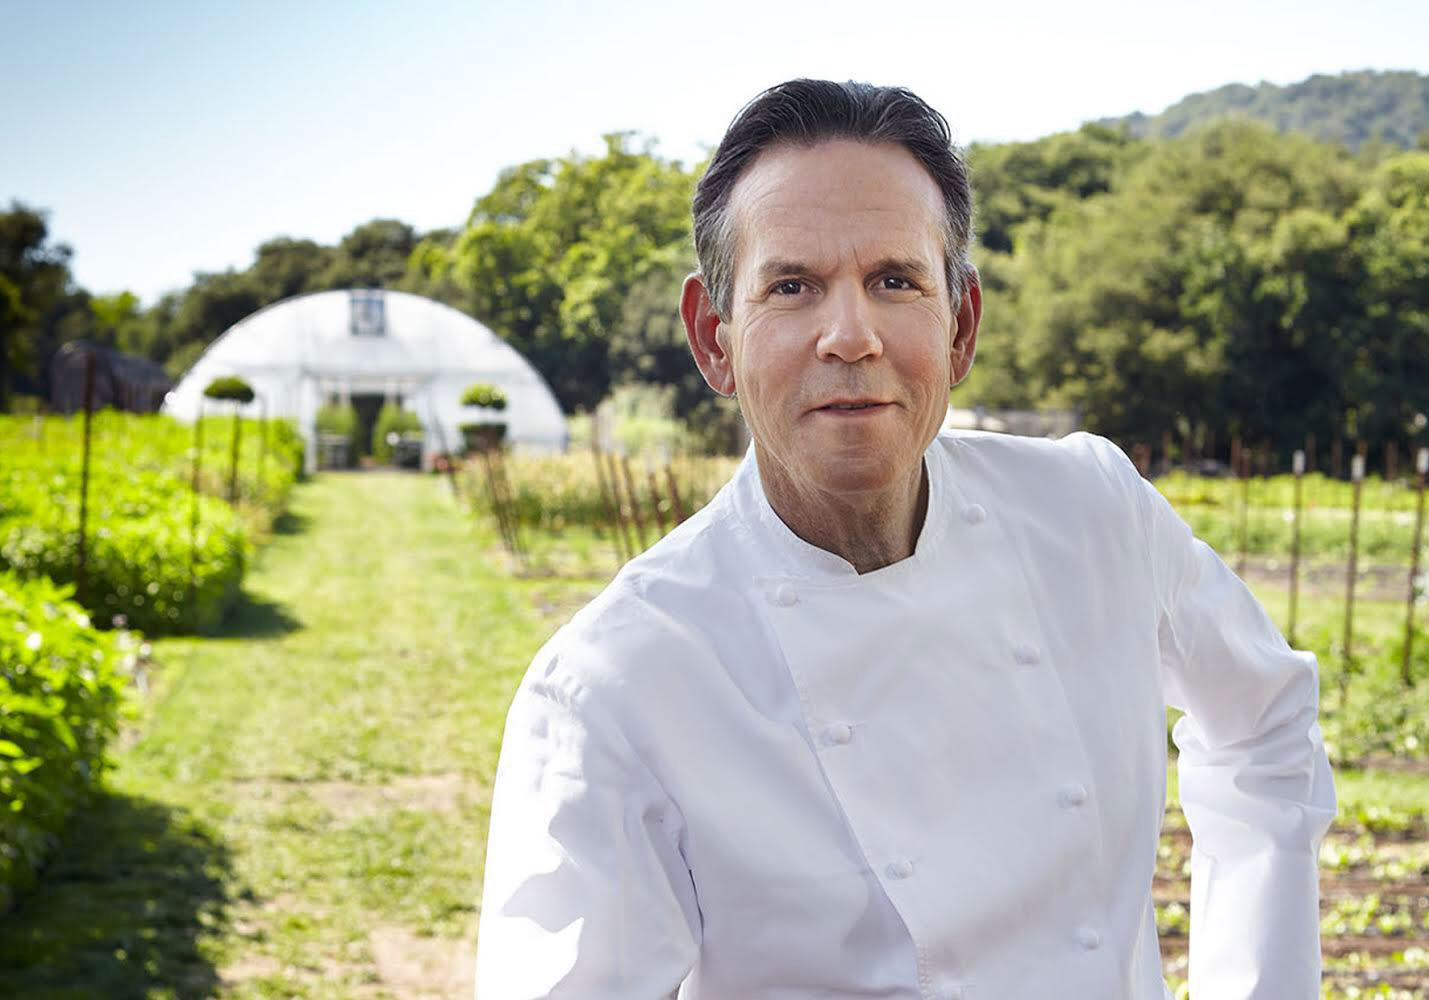 Why Thomas Keller Thinks Farm-to-Table Is Absurd